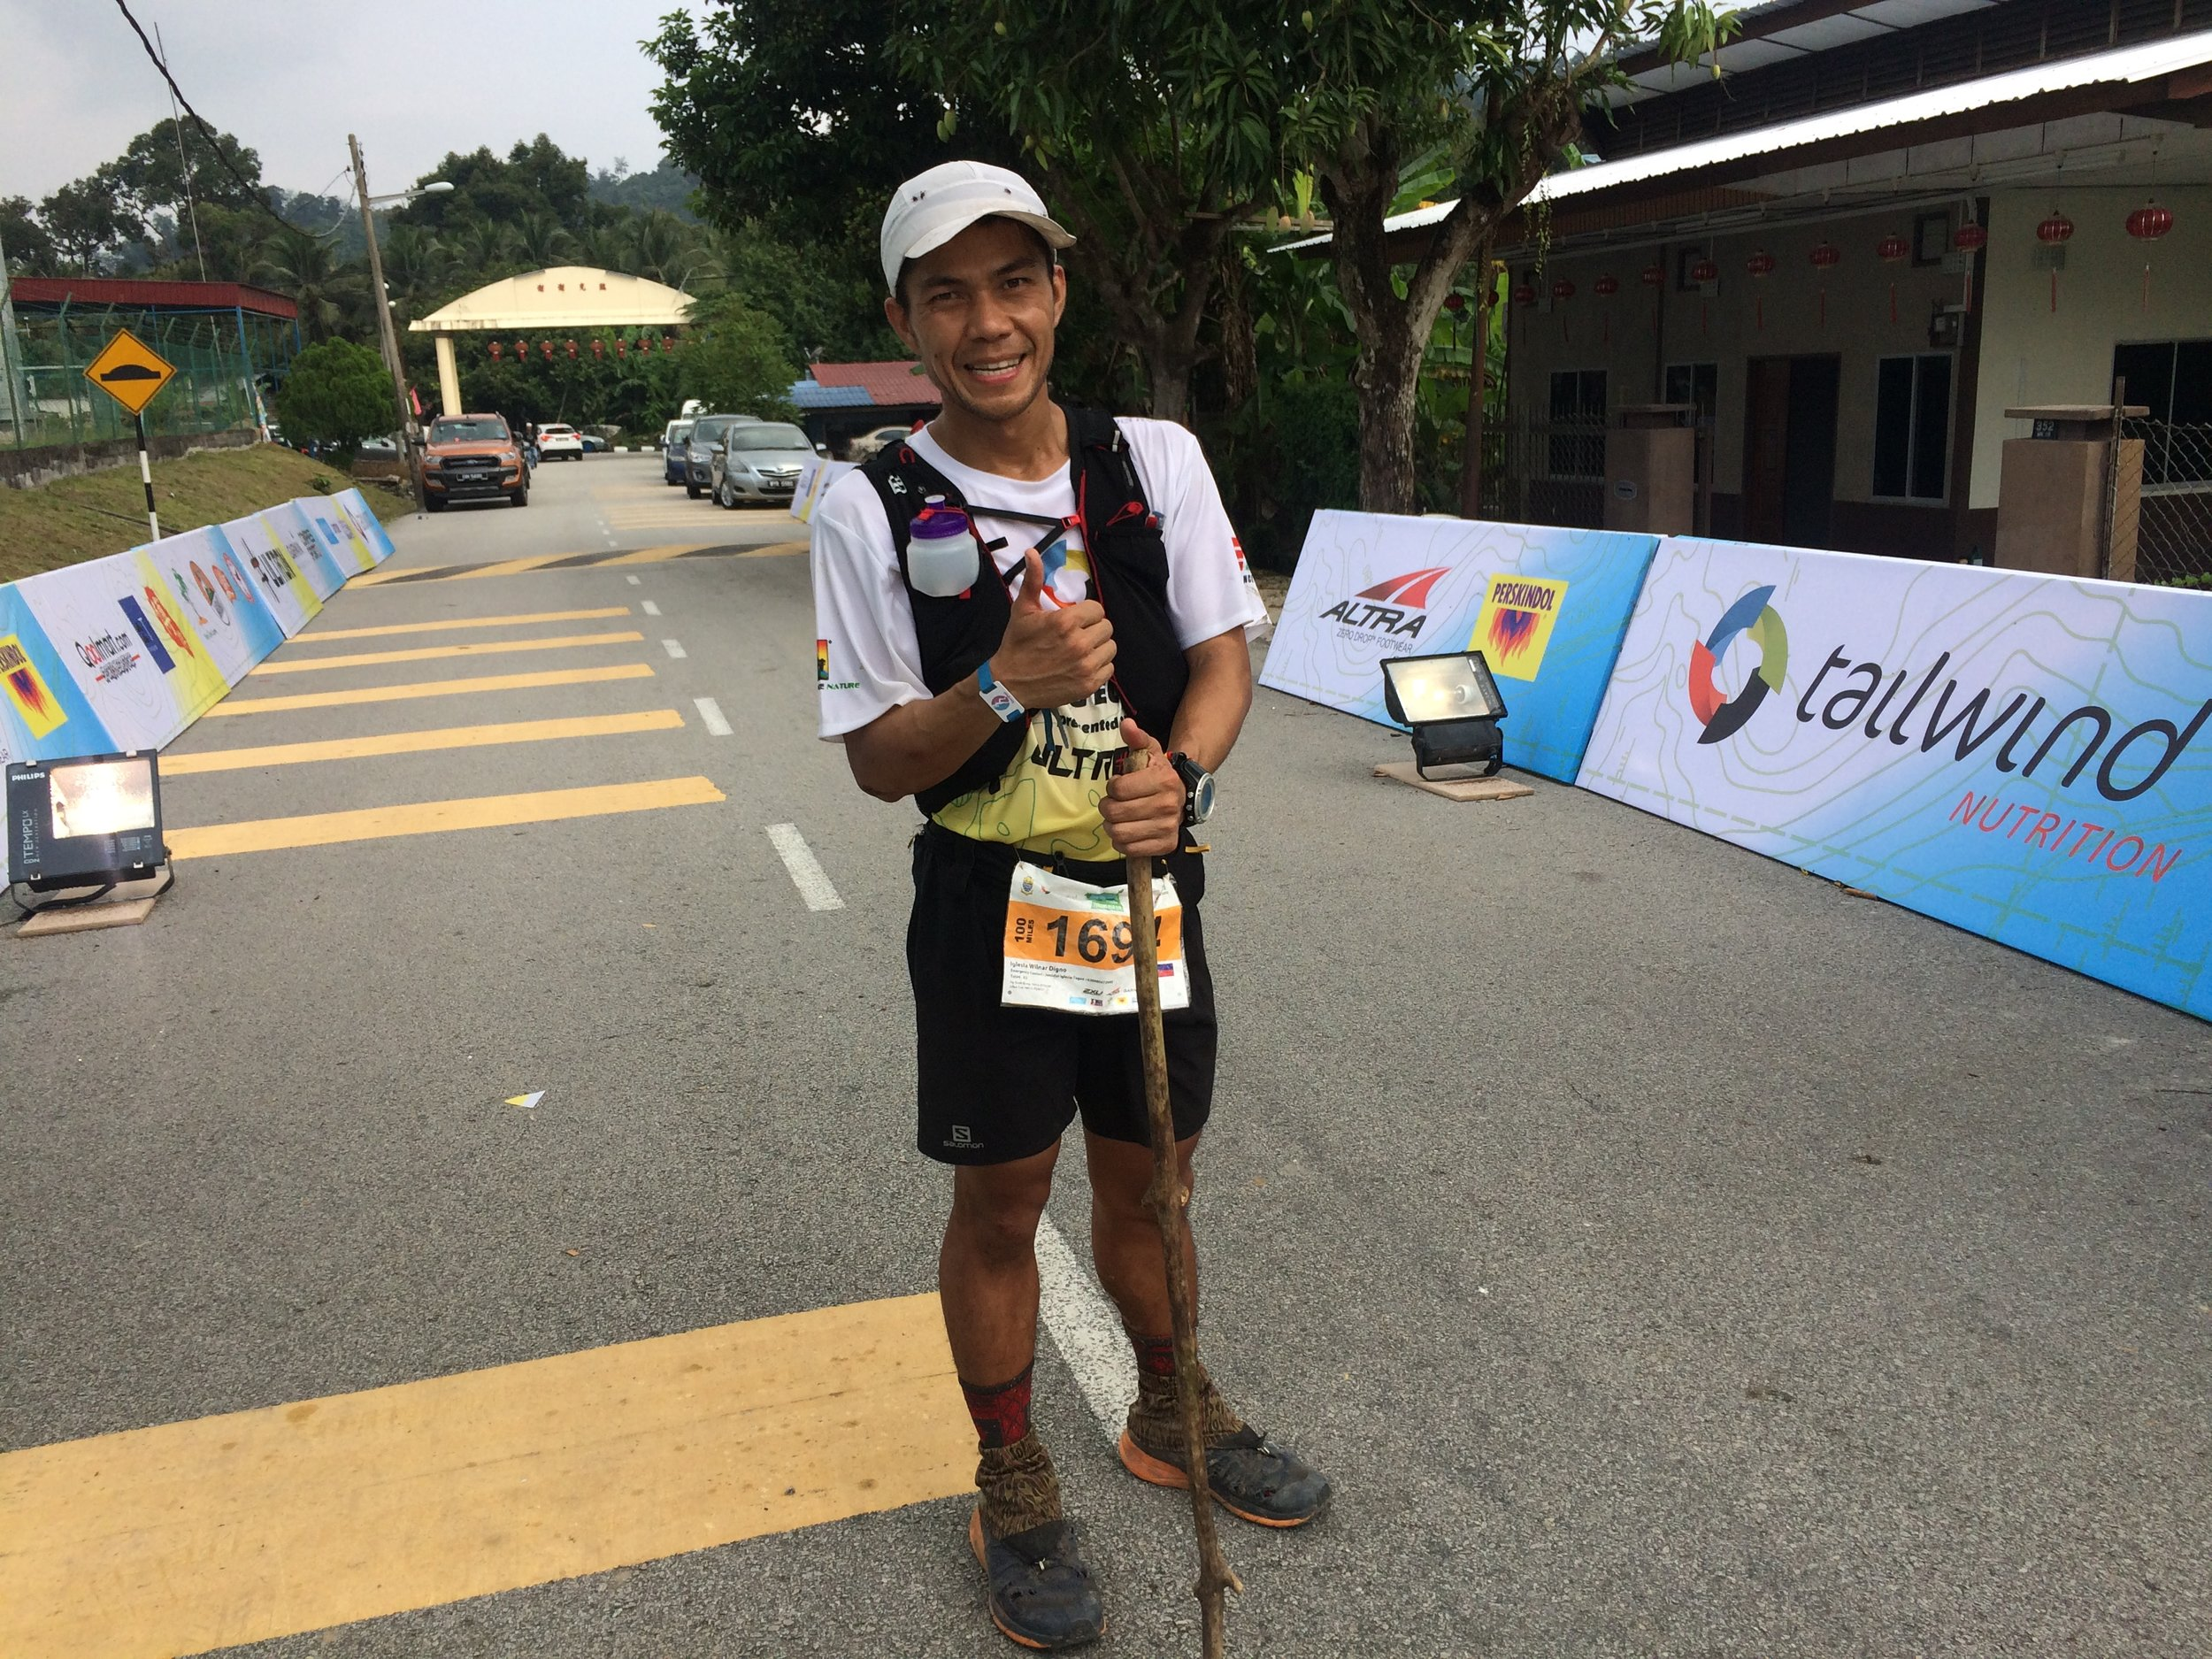 Exhausted but satisfied: Wilnar Iglesia finishes 3rd and is the new ATM championship leader